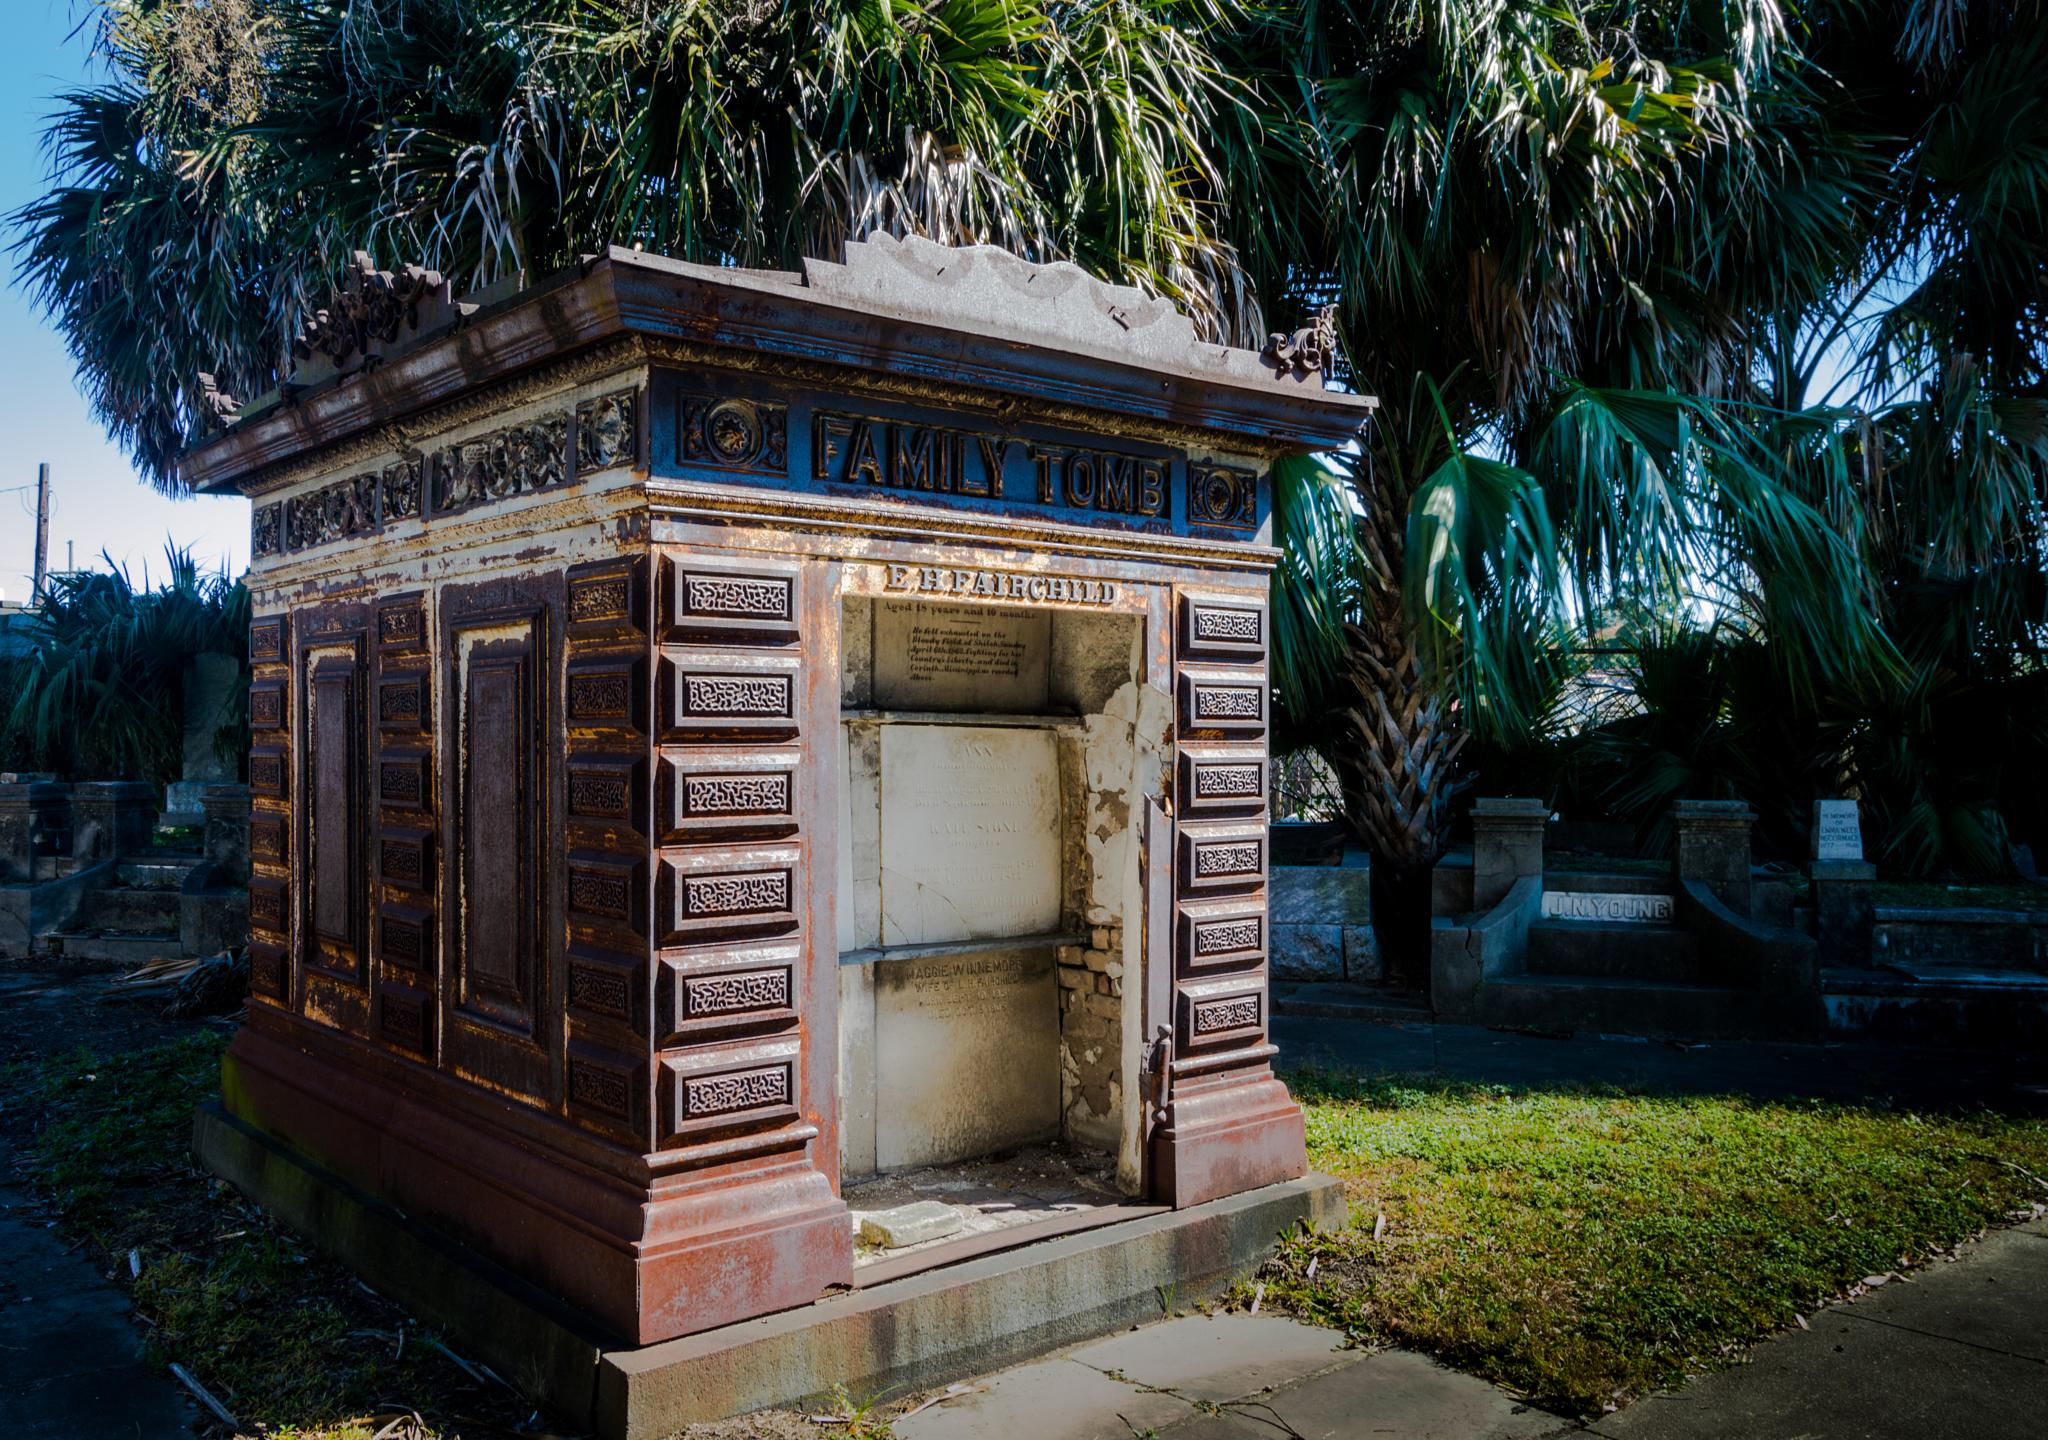 Family Tomb by Brandt